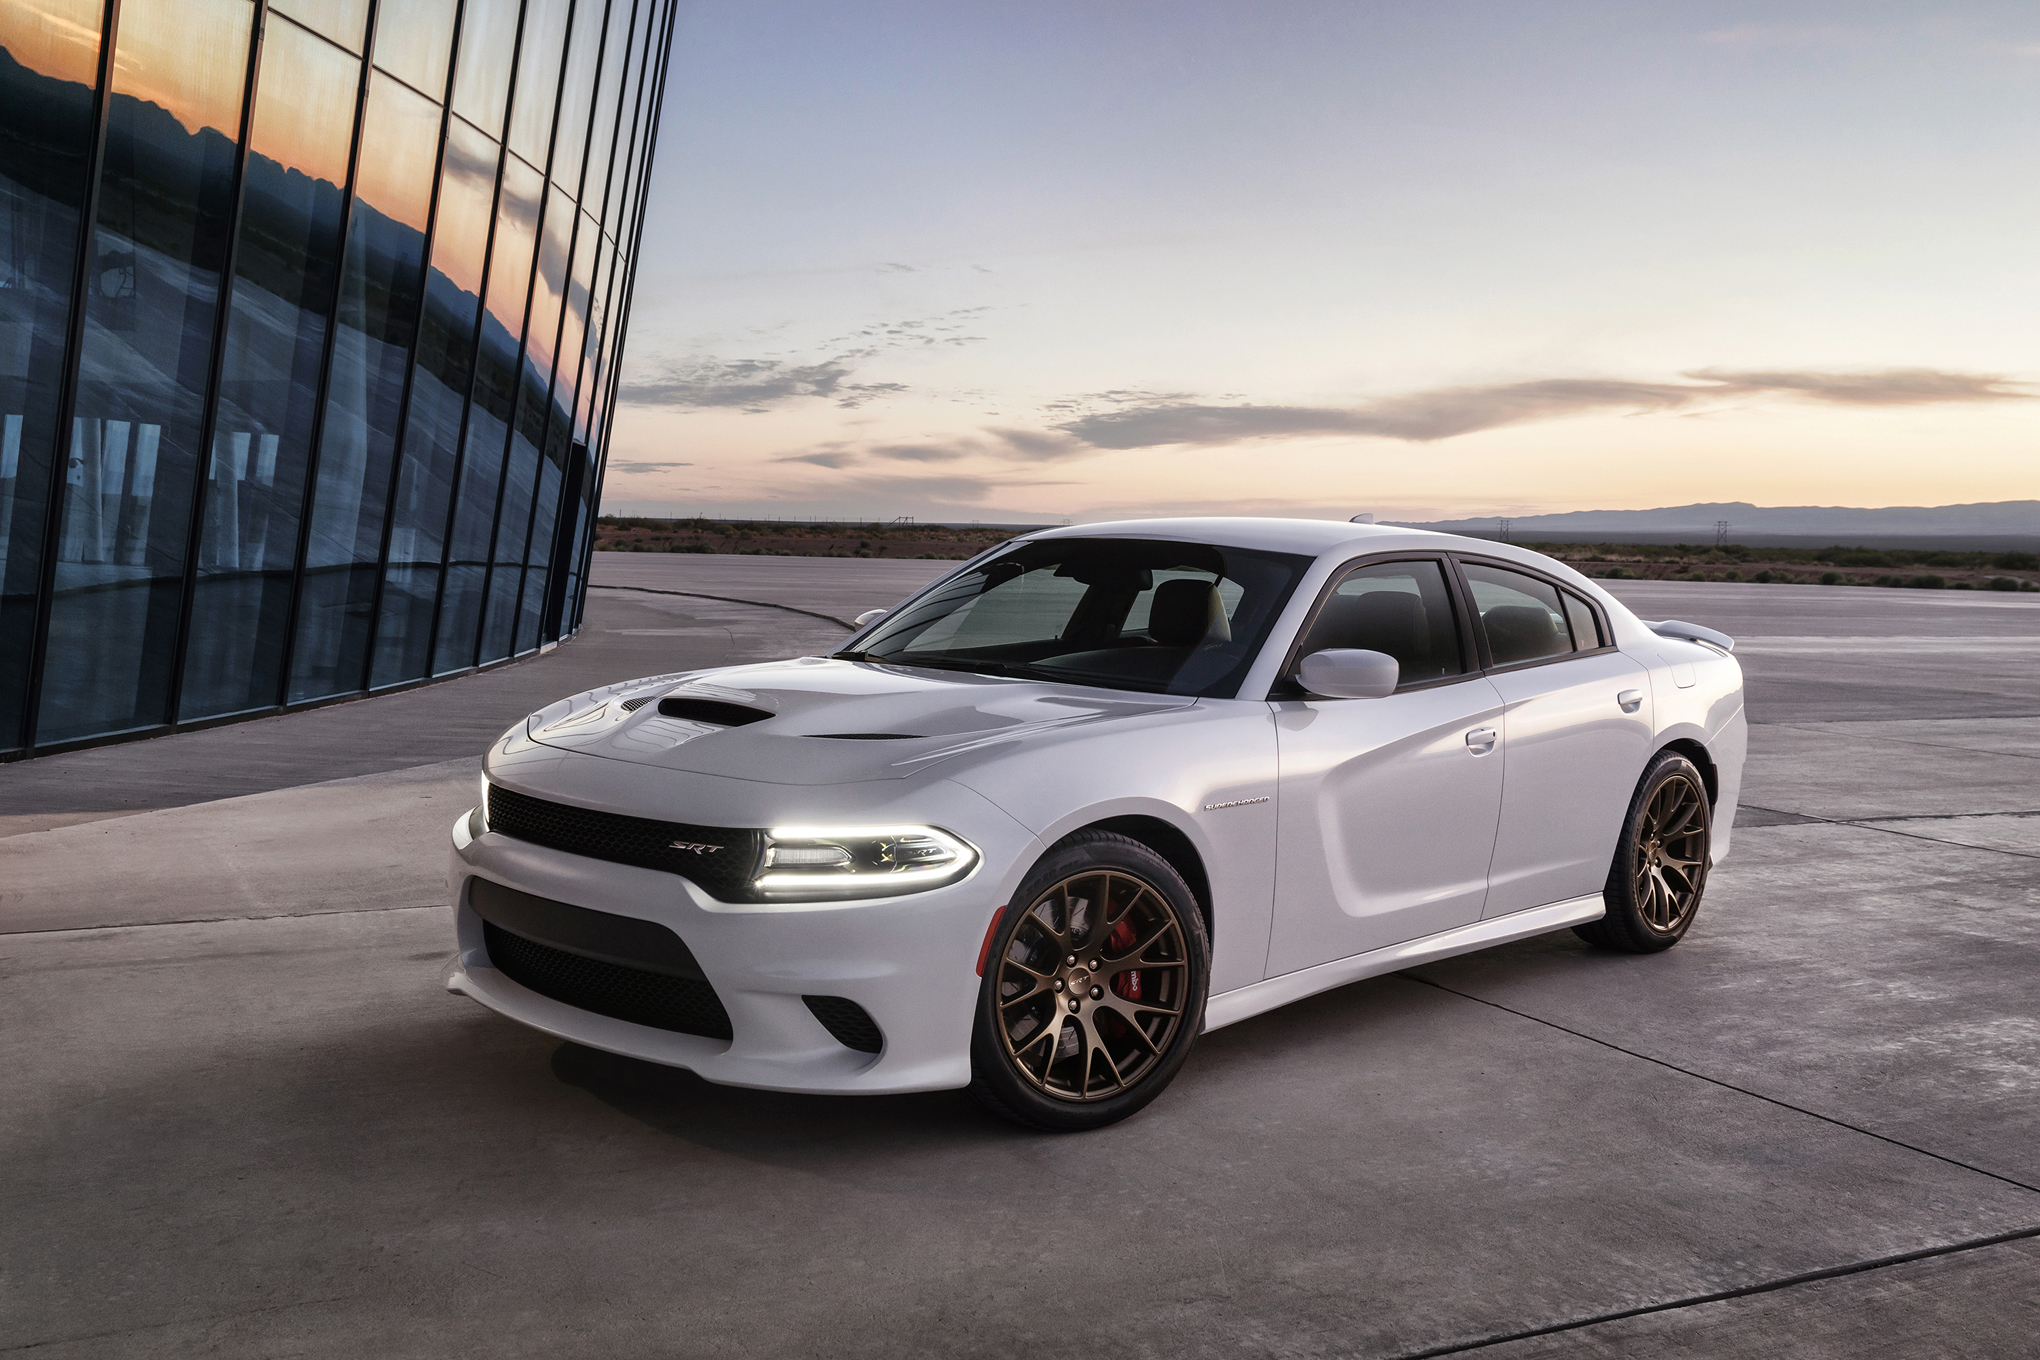 2015 Dodge Charger Pictures Gallery (39 Images)